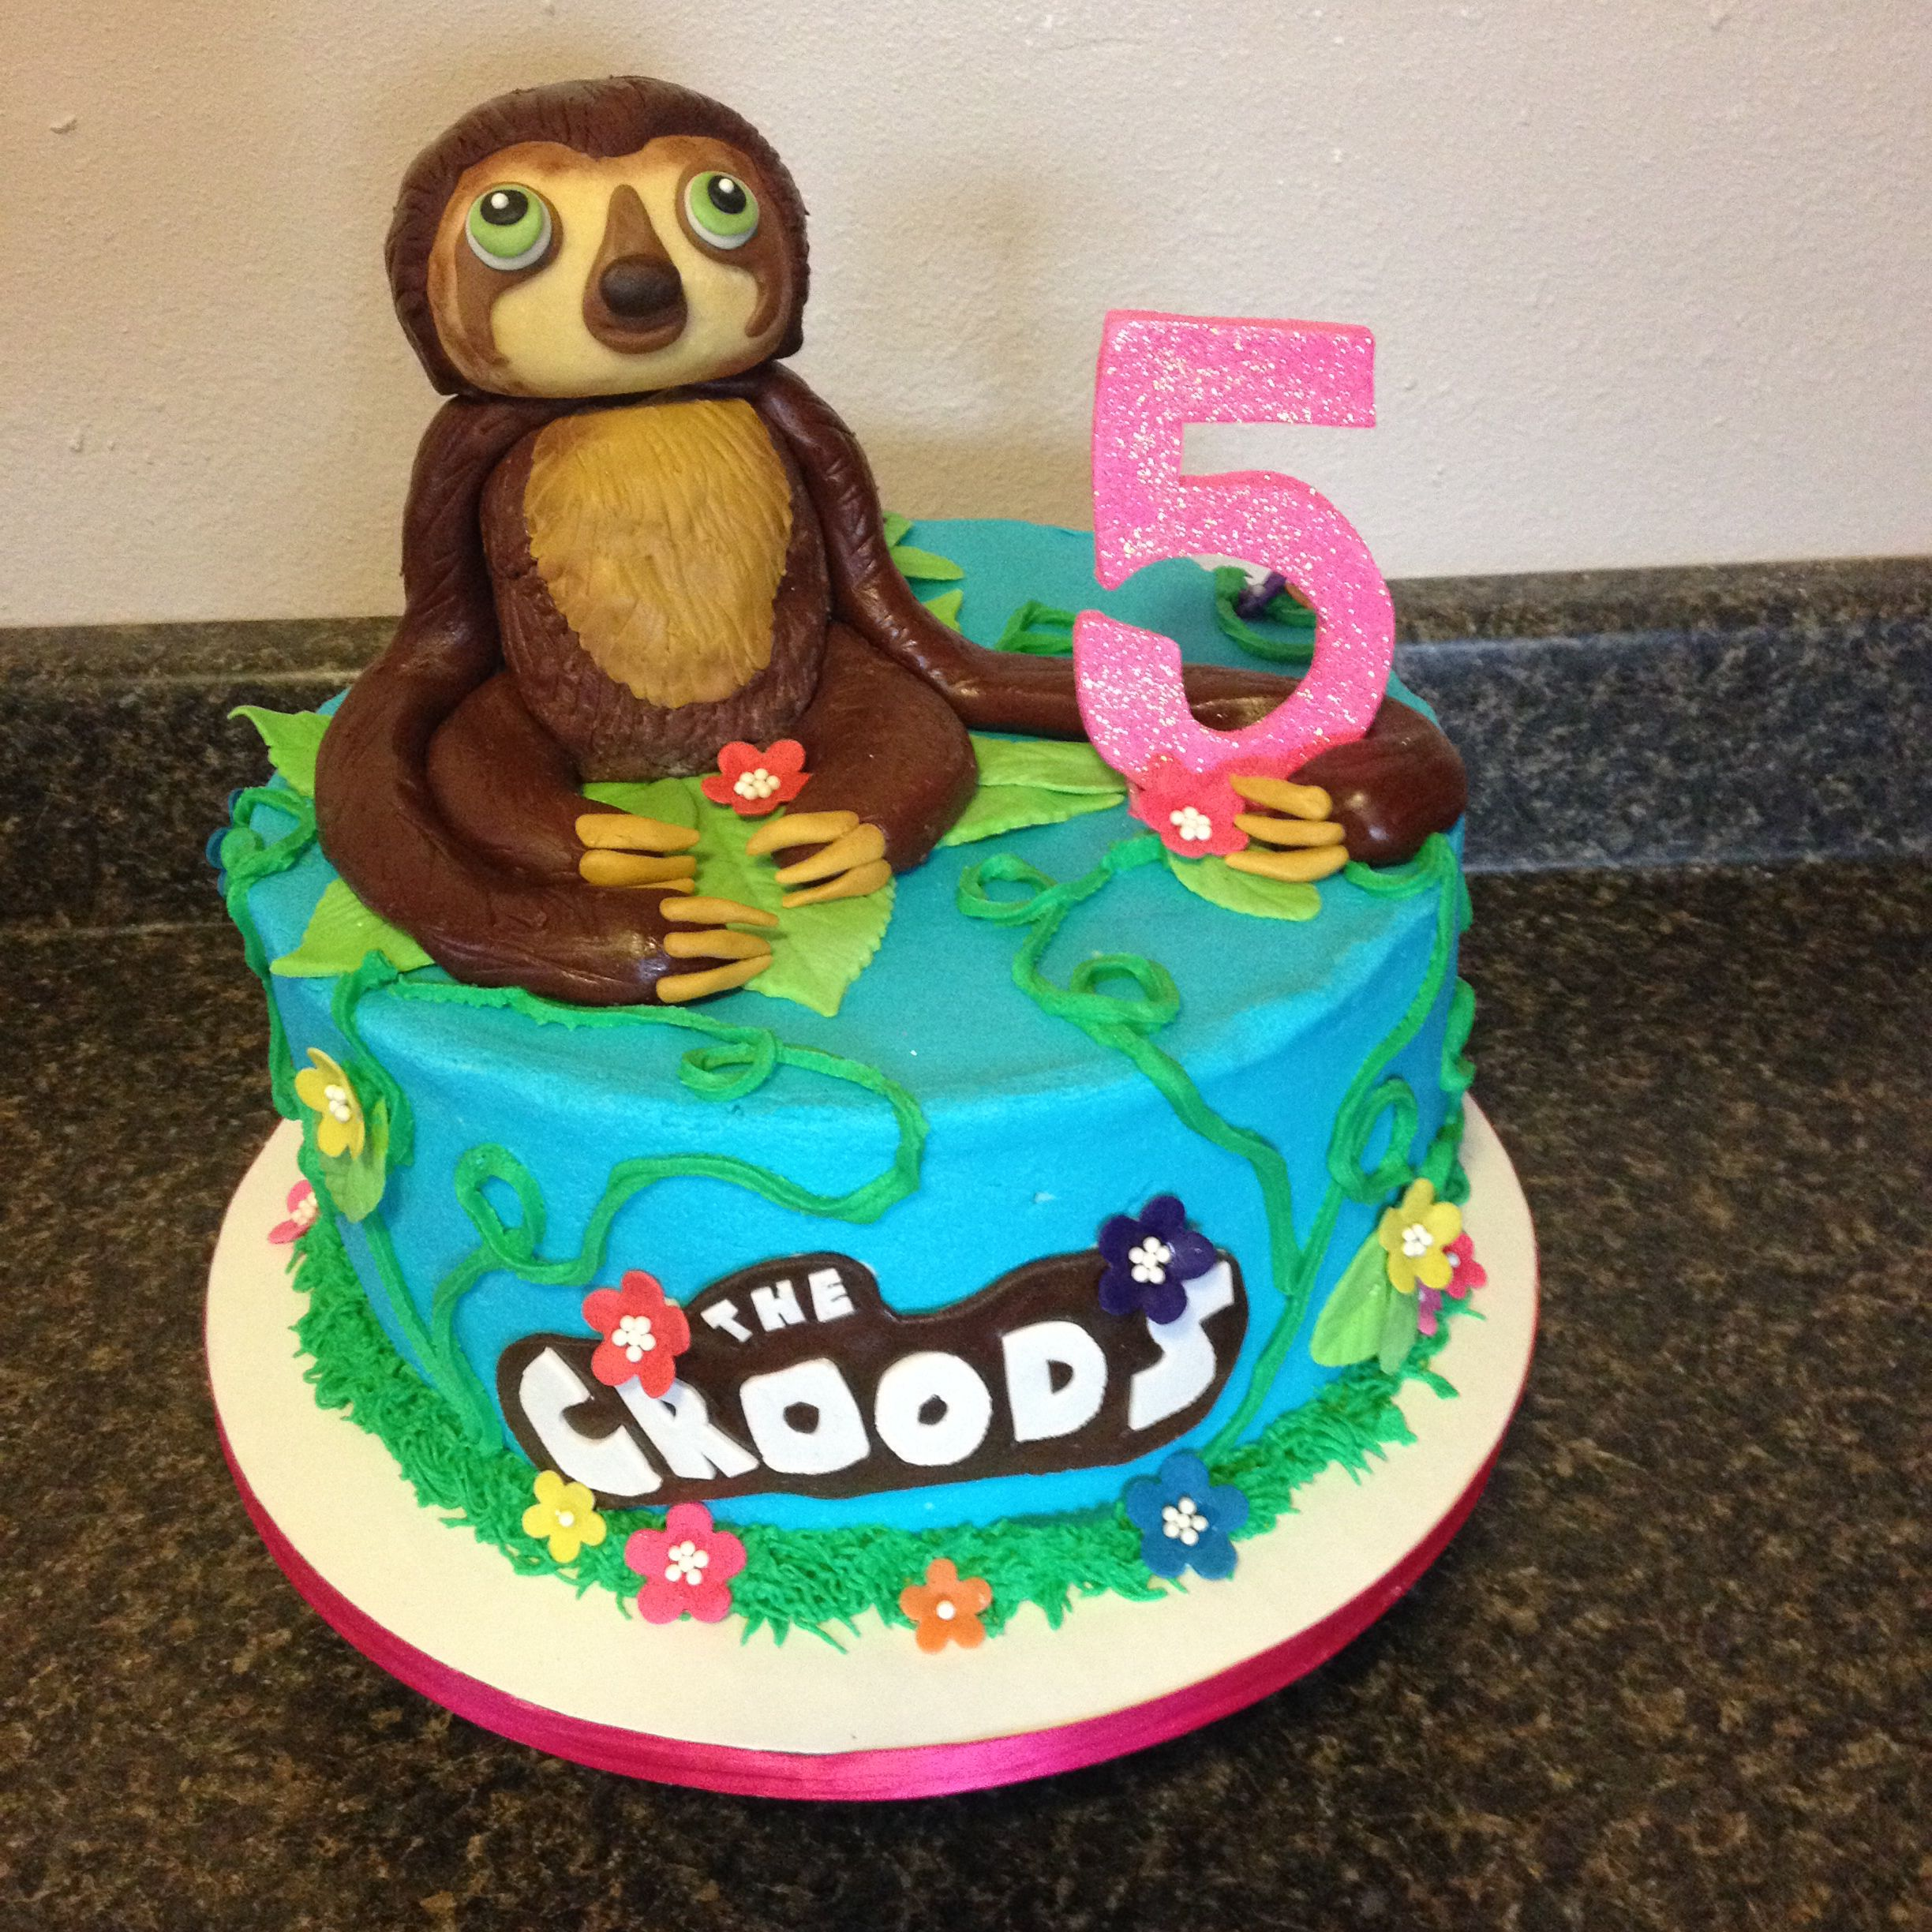 Croods Cake Creative Creations By Kamica Pinterest Cake